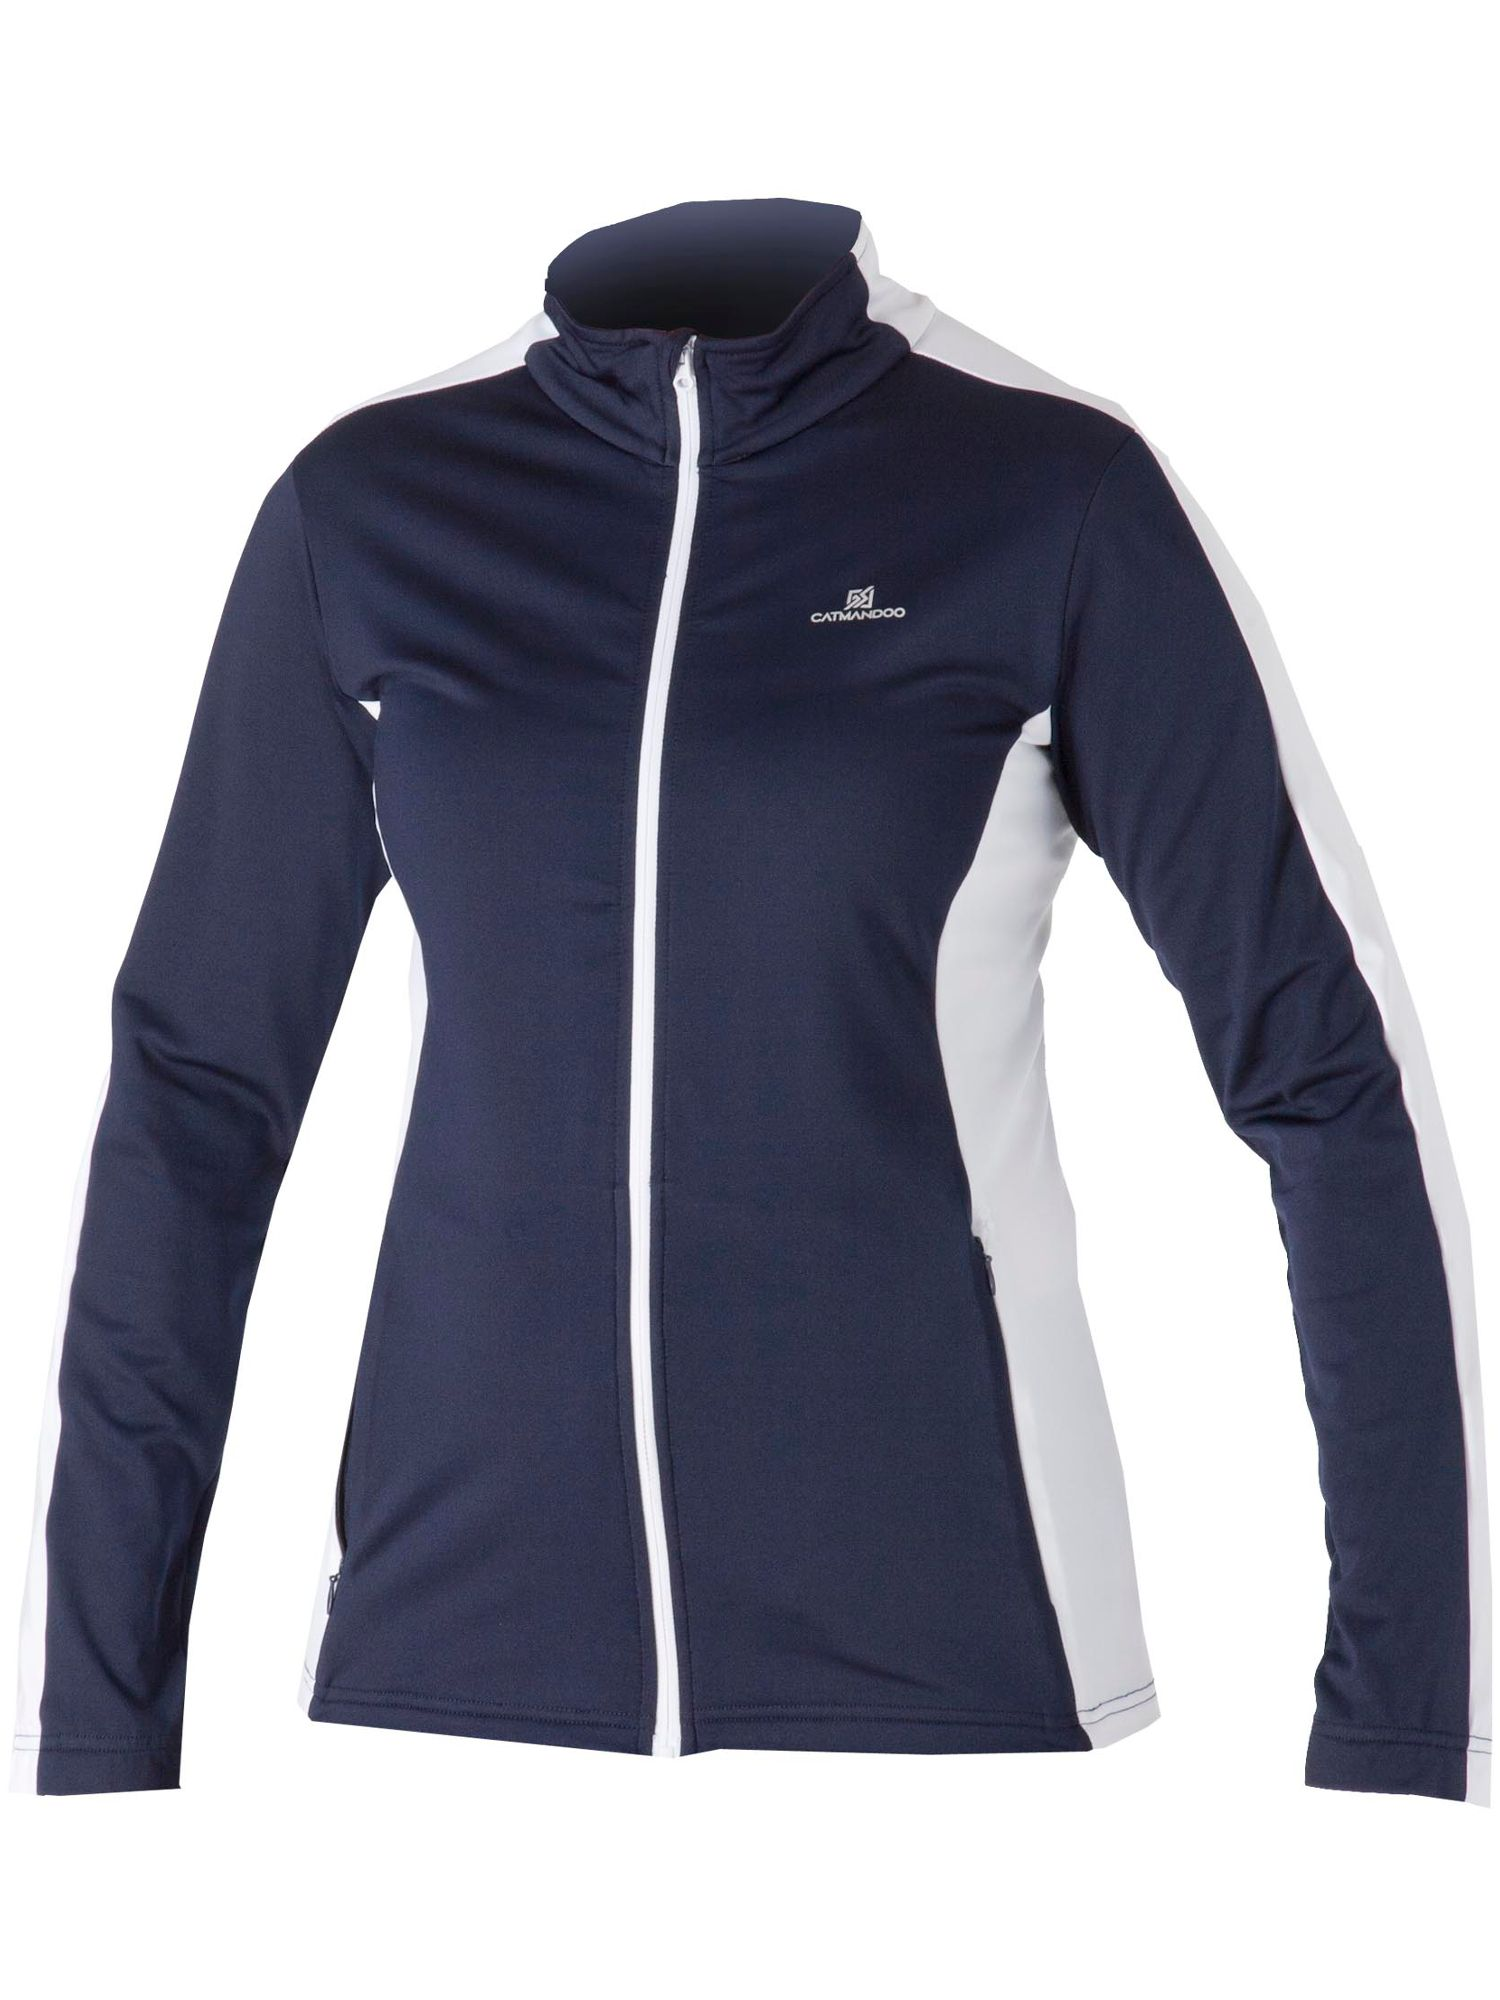 Catmandoo Sherri Midlayer Jacket, Dark Blue